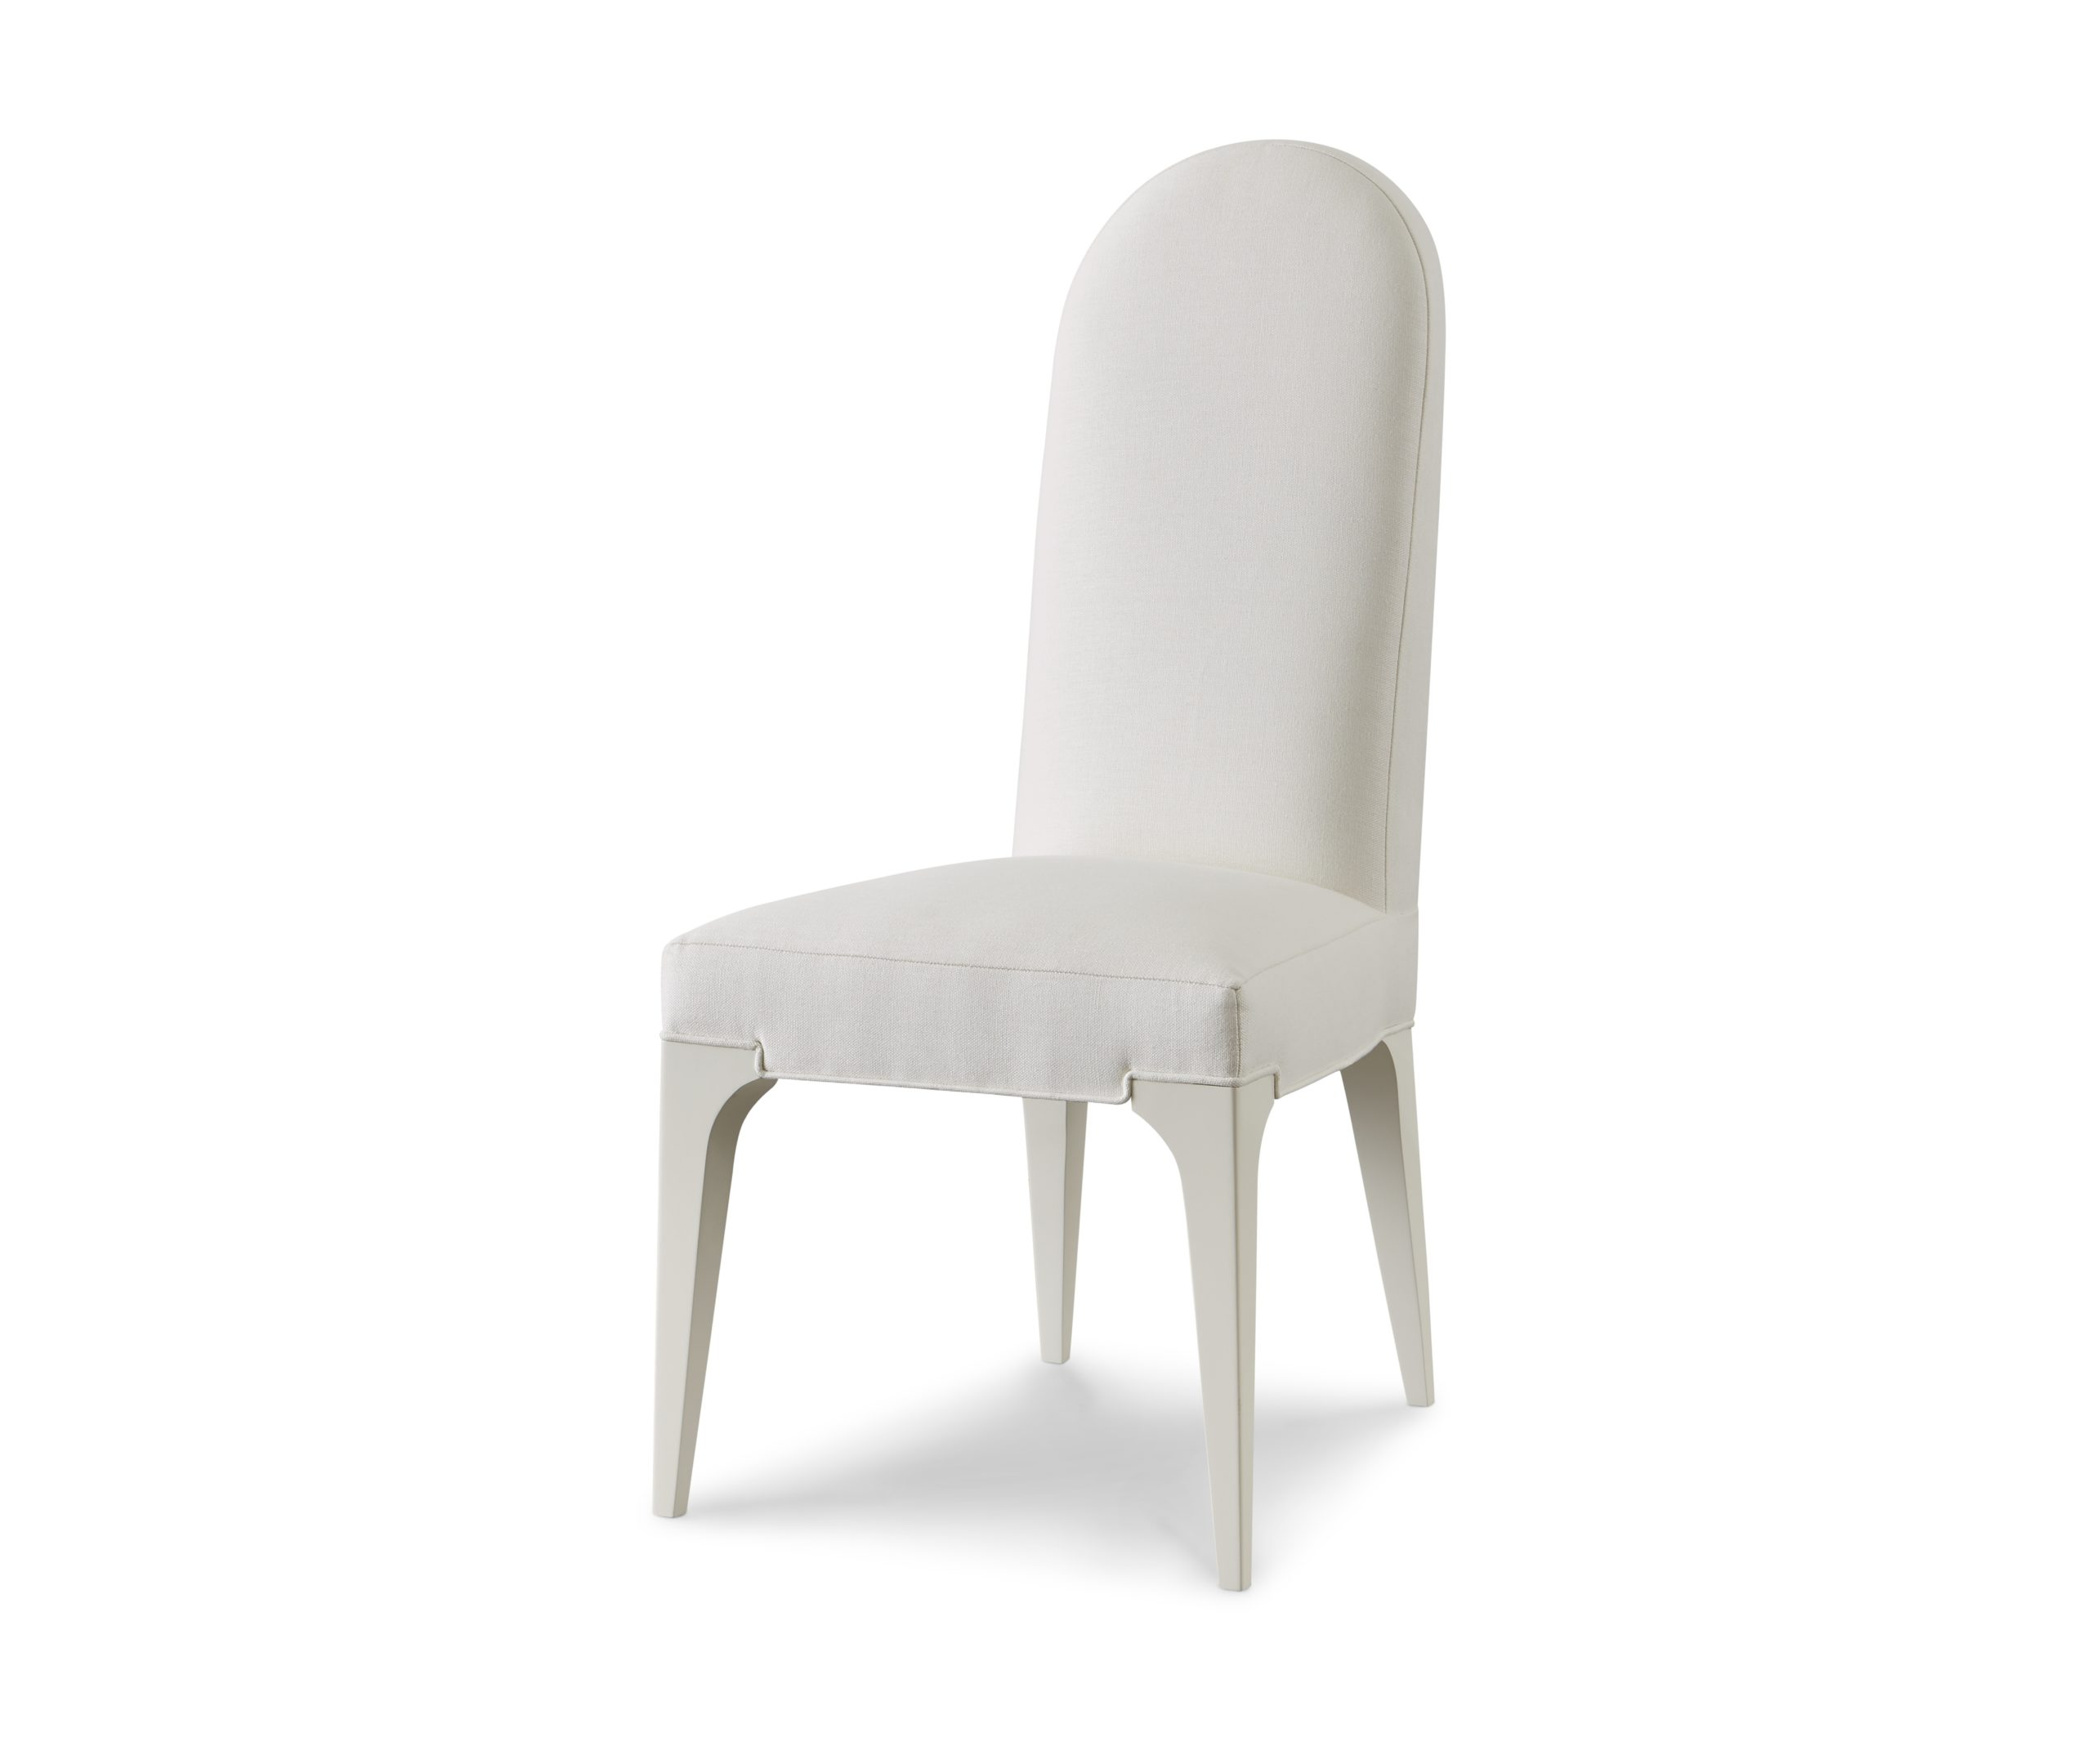 Baker_products_WNWN_declan_chair_BAA3041_FRONT_3QRT-scaled-2